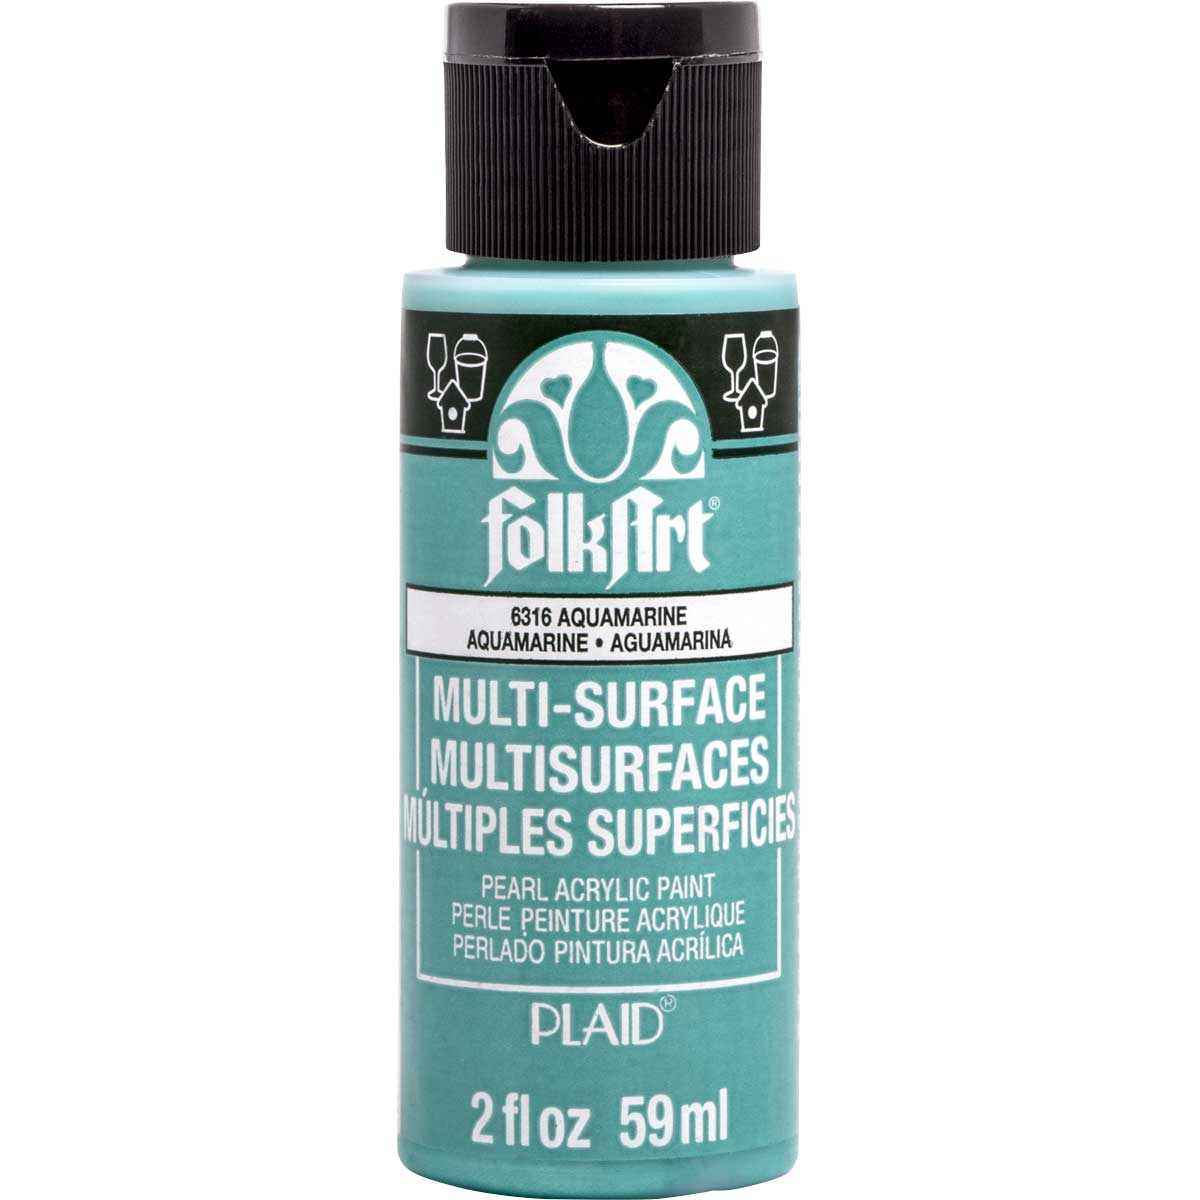 FolkArt ® Multi-Surface Pearl Acrylic Paints - Aquamarine, 2 oz. - 6316